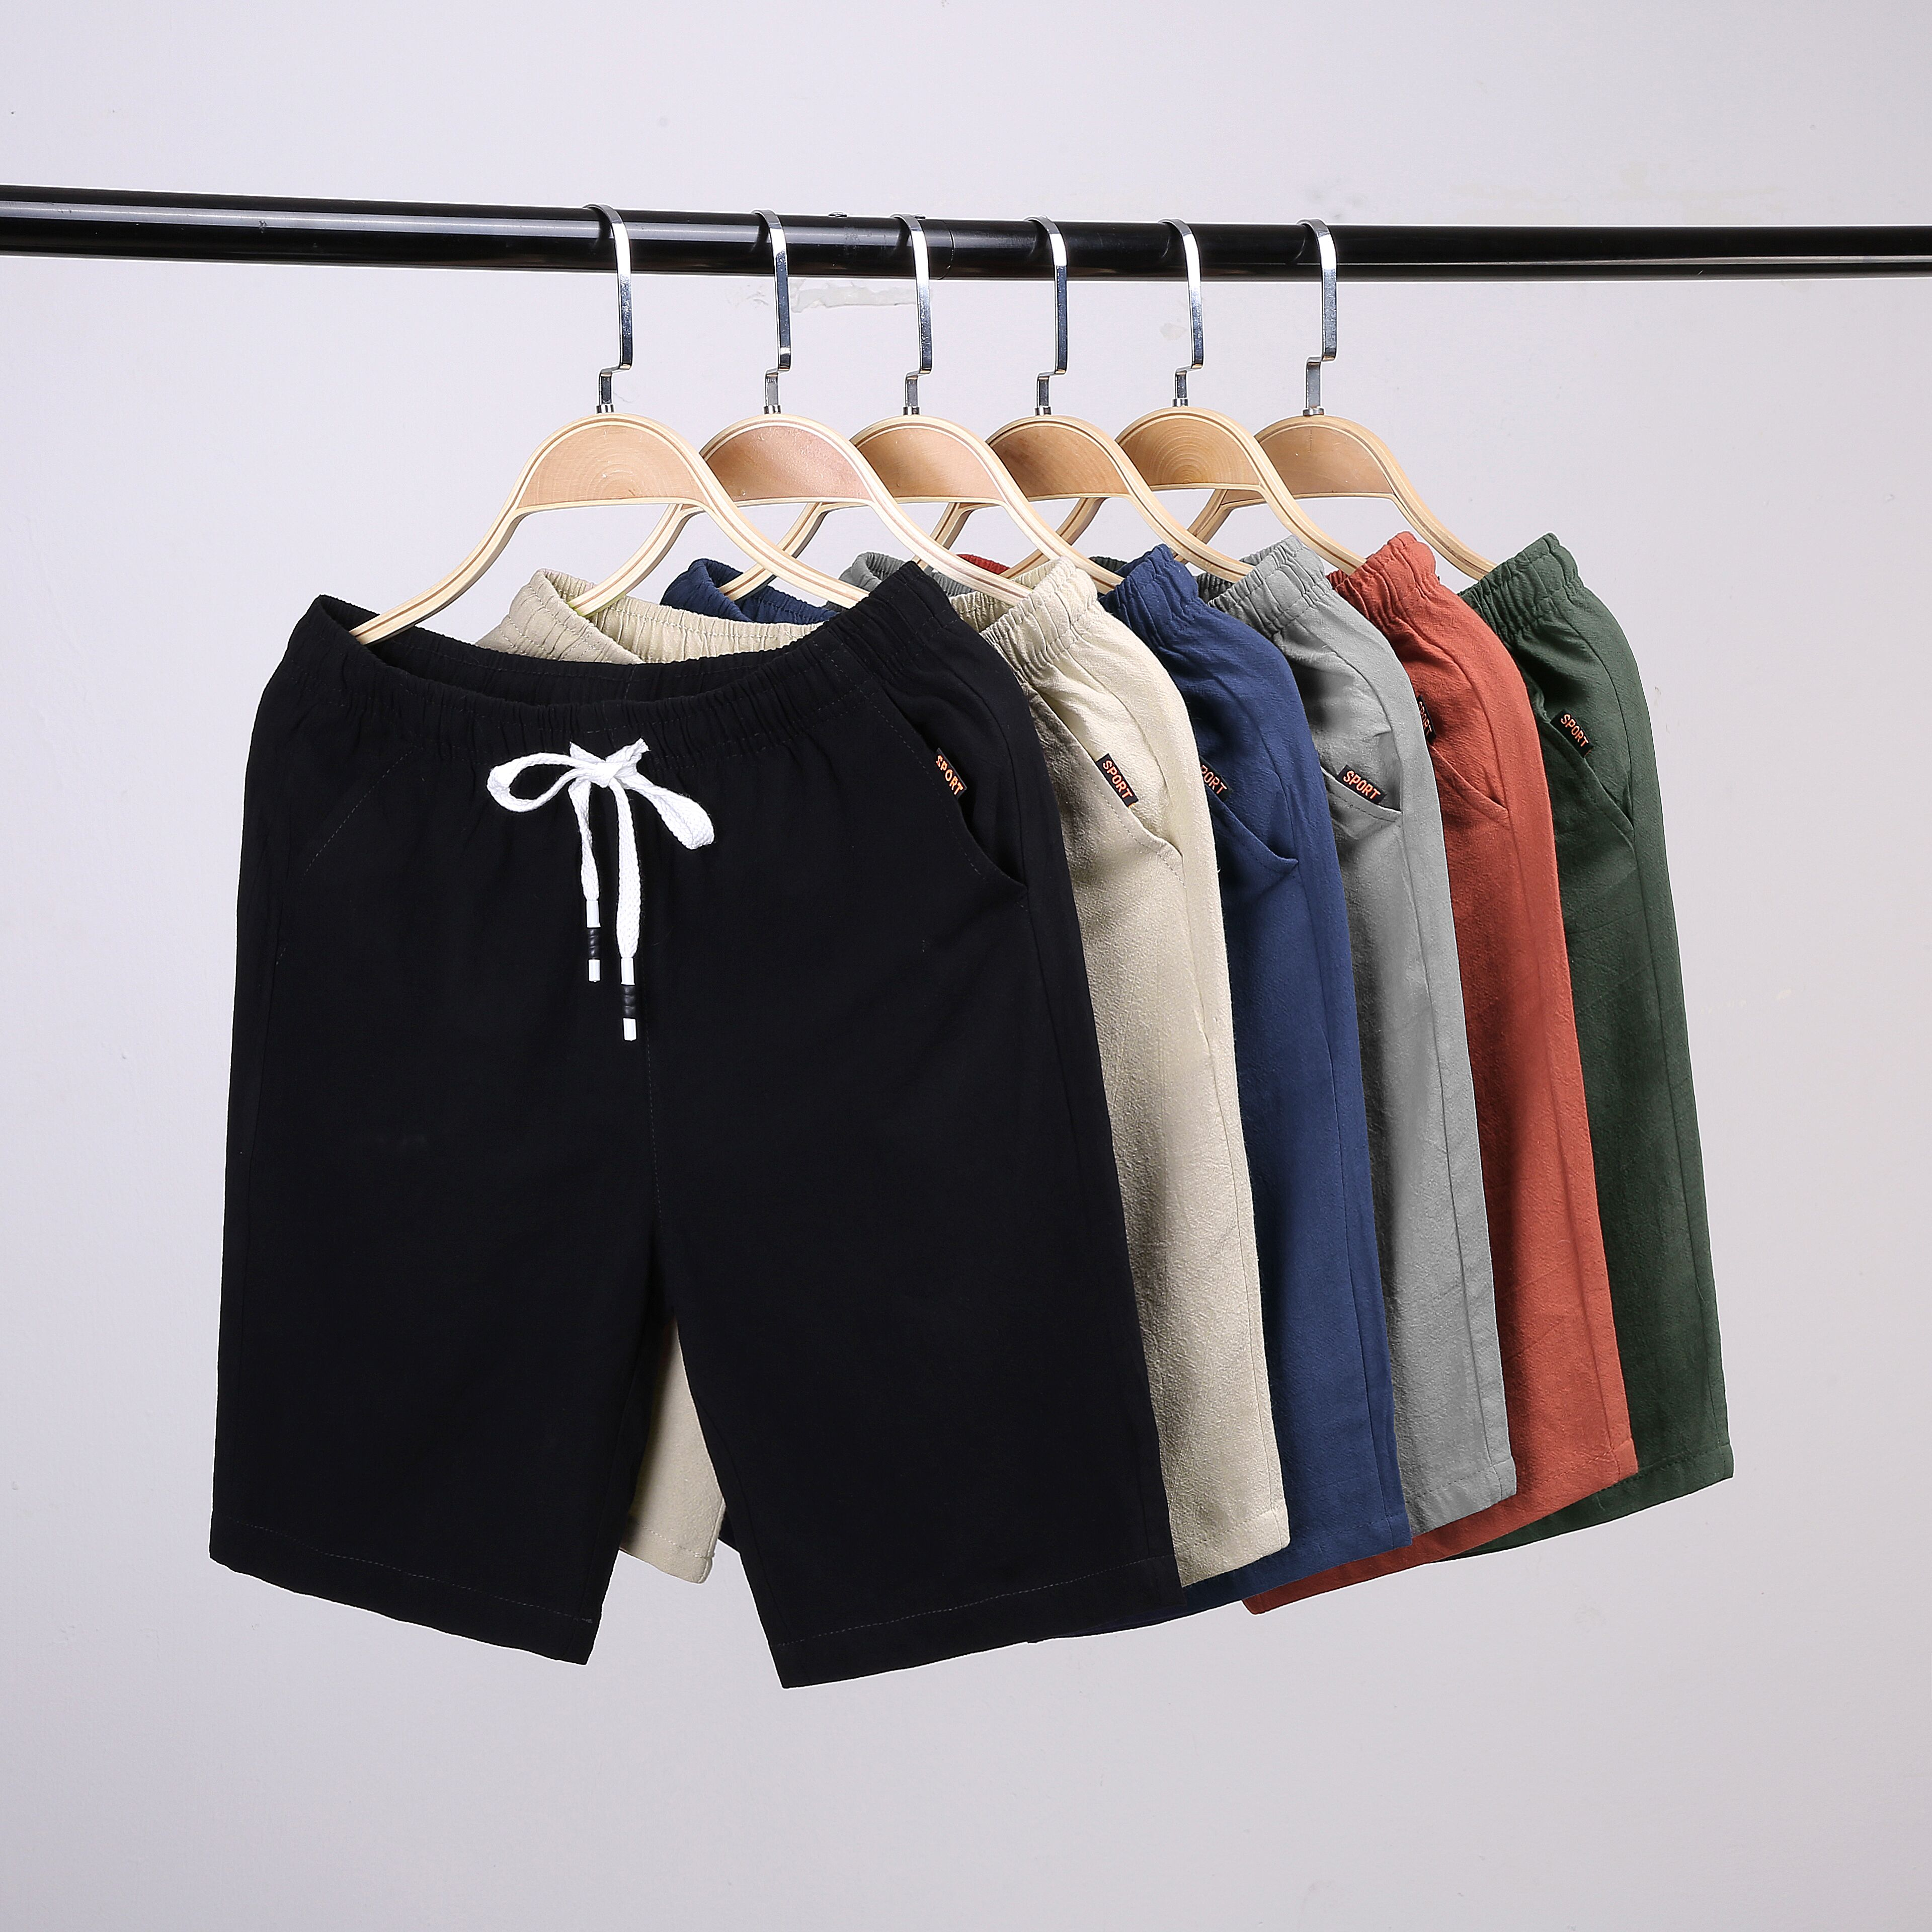 2019 Woodvoice Casual Shorts Men Clothes Summer Casual Men's Shorts Homme Cotton Bermuda Short Trousers Brand Clothing Puls Size